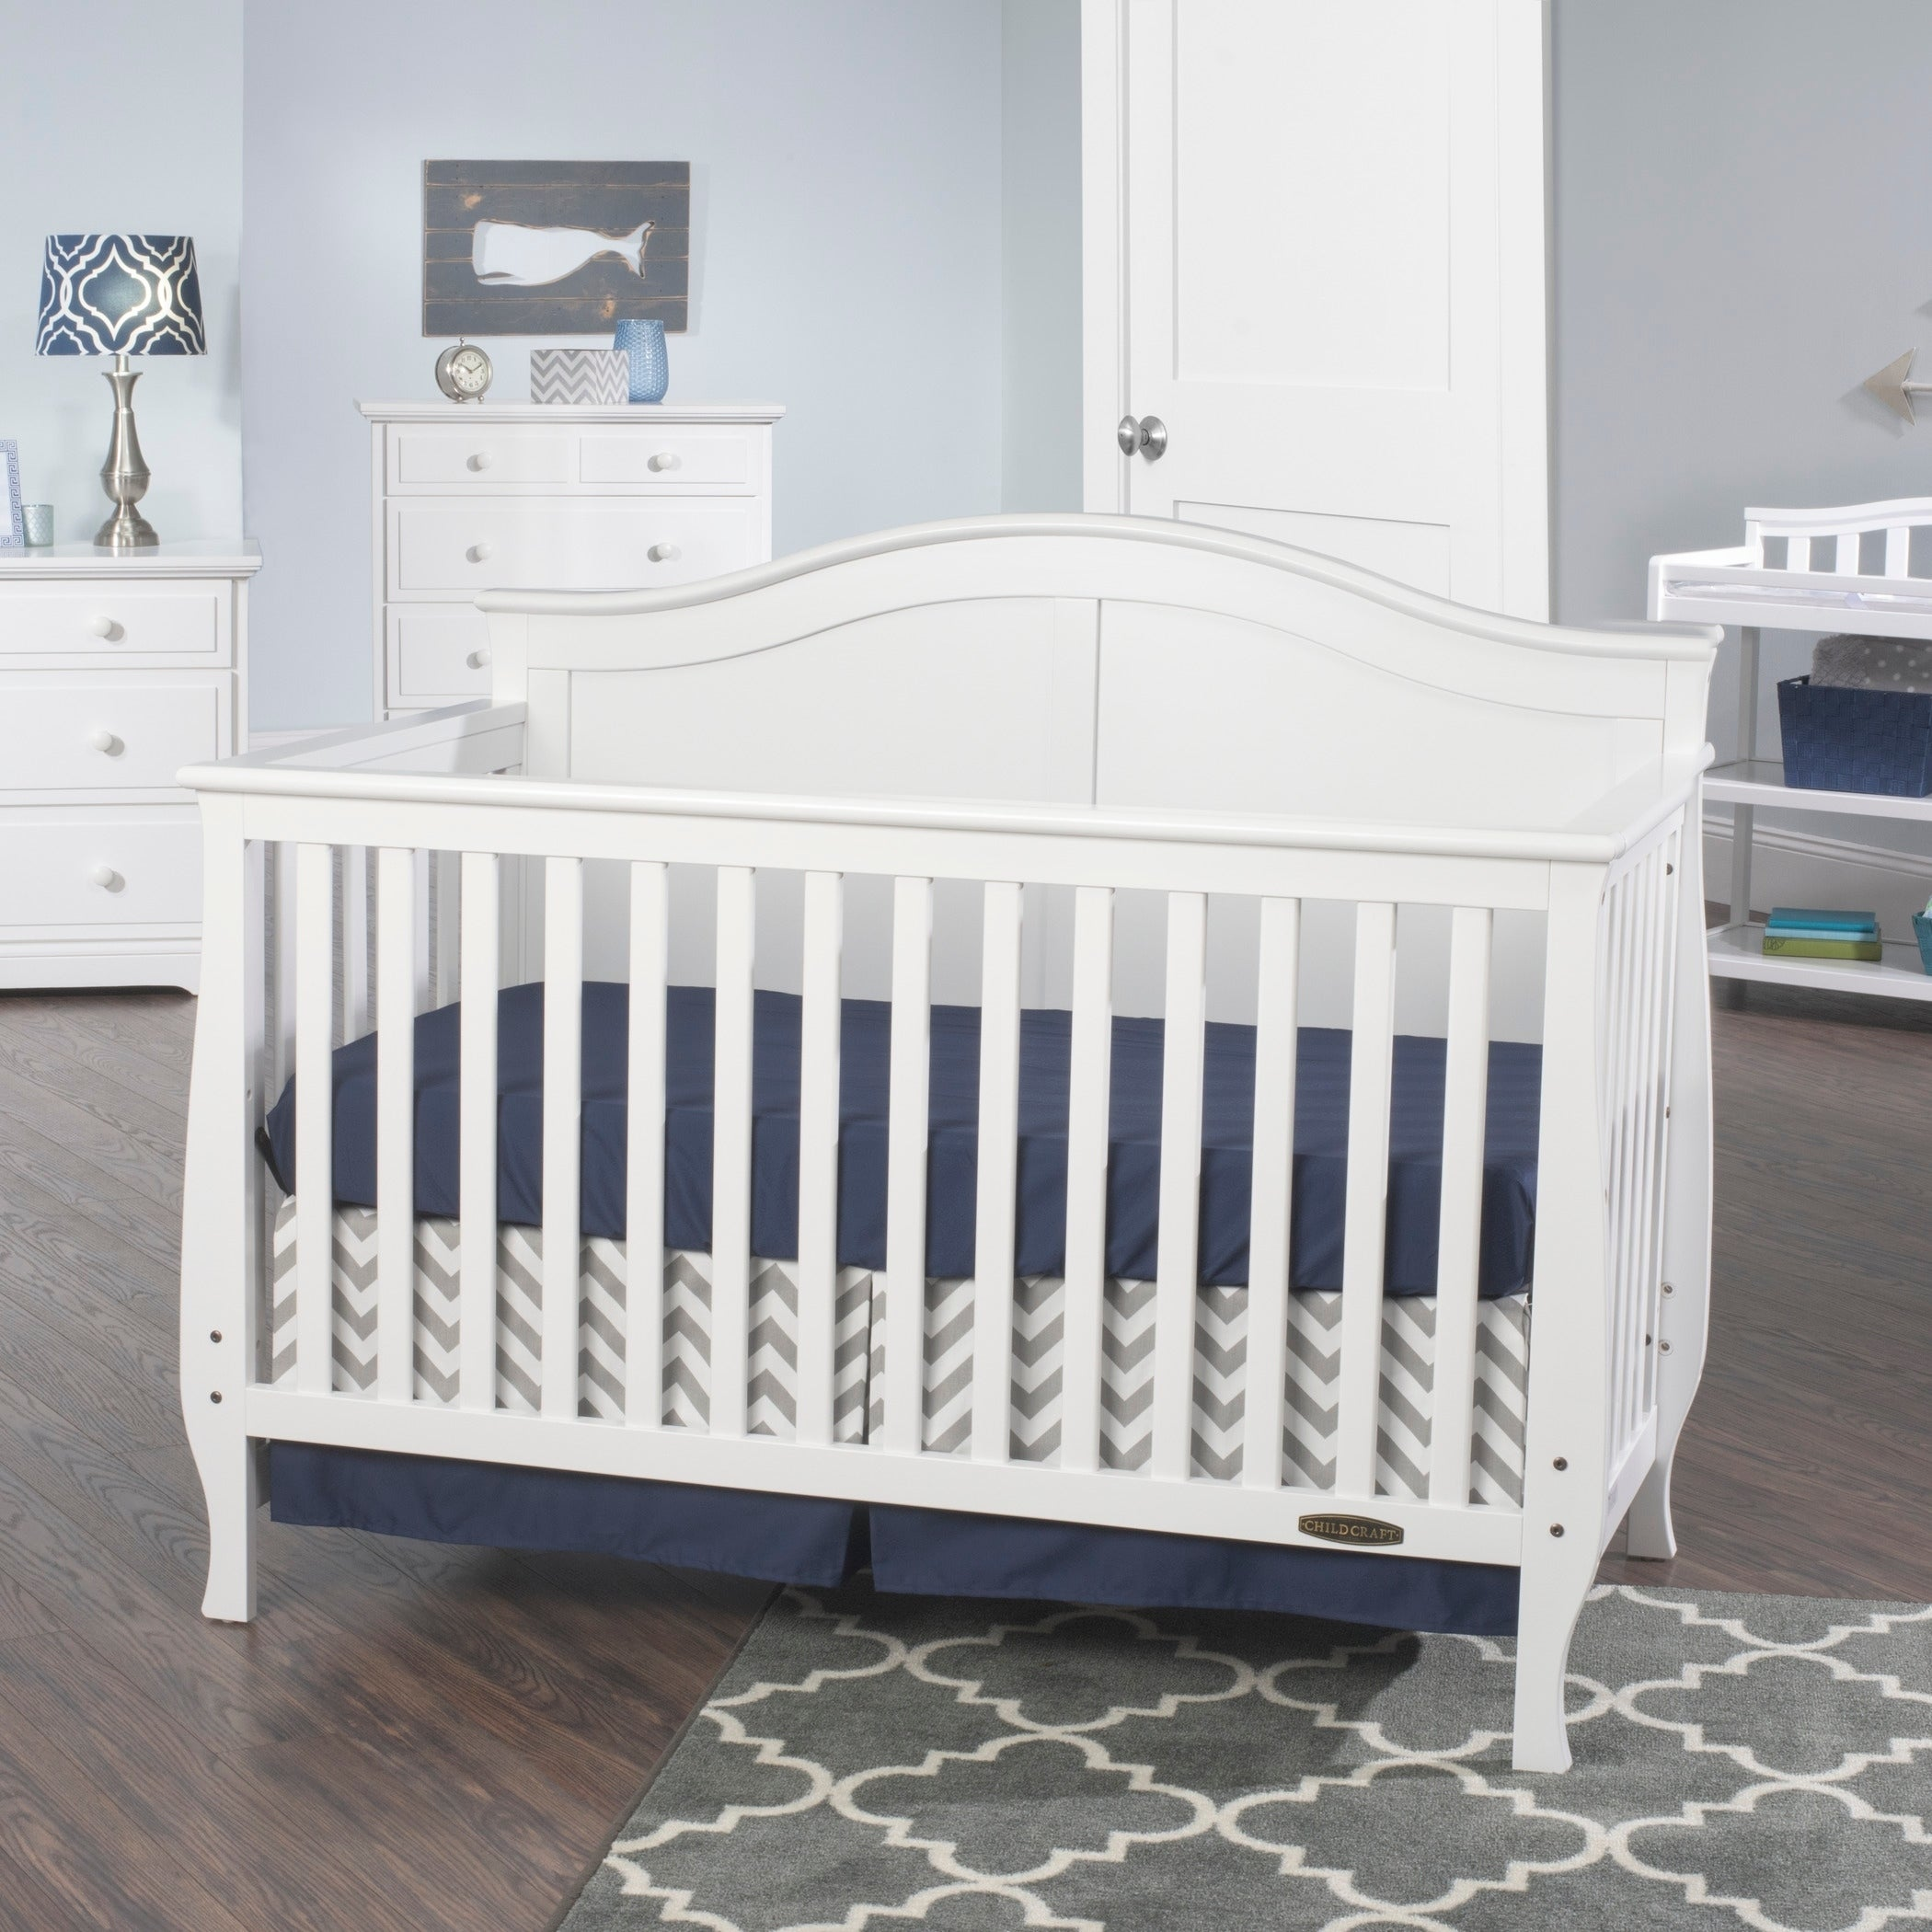 rail of childcraft craft clssic clen cnted cca contemporry kit crib bundles conversion cribf toddler joy cclegacy arbor westgate boj child camden legacy cribs soho gate guarda